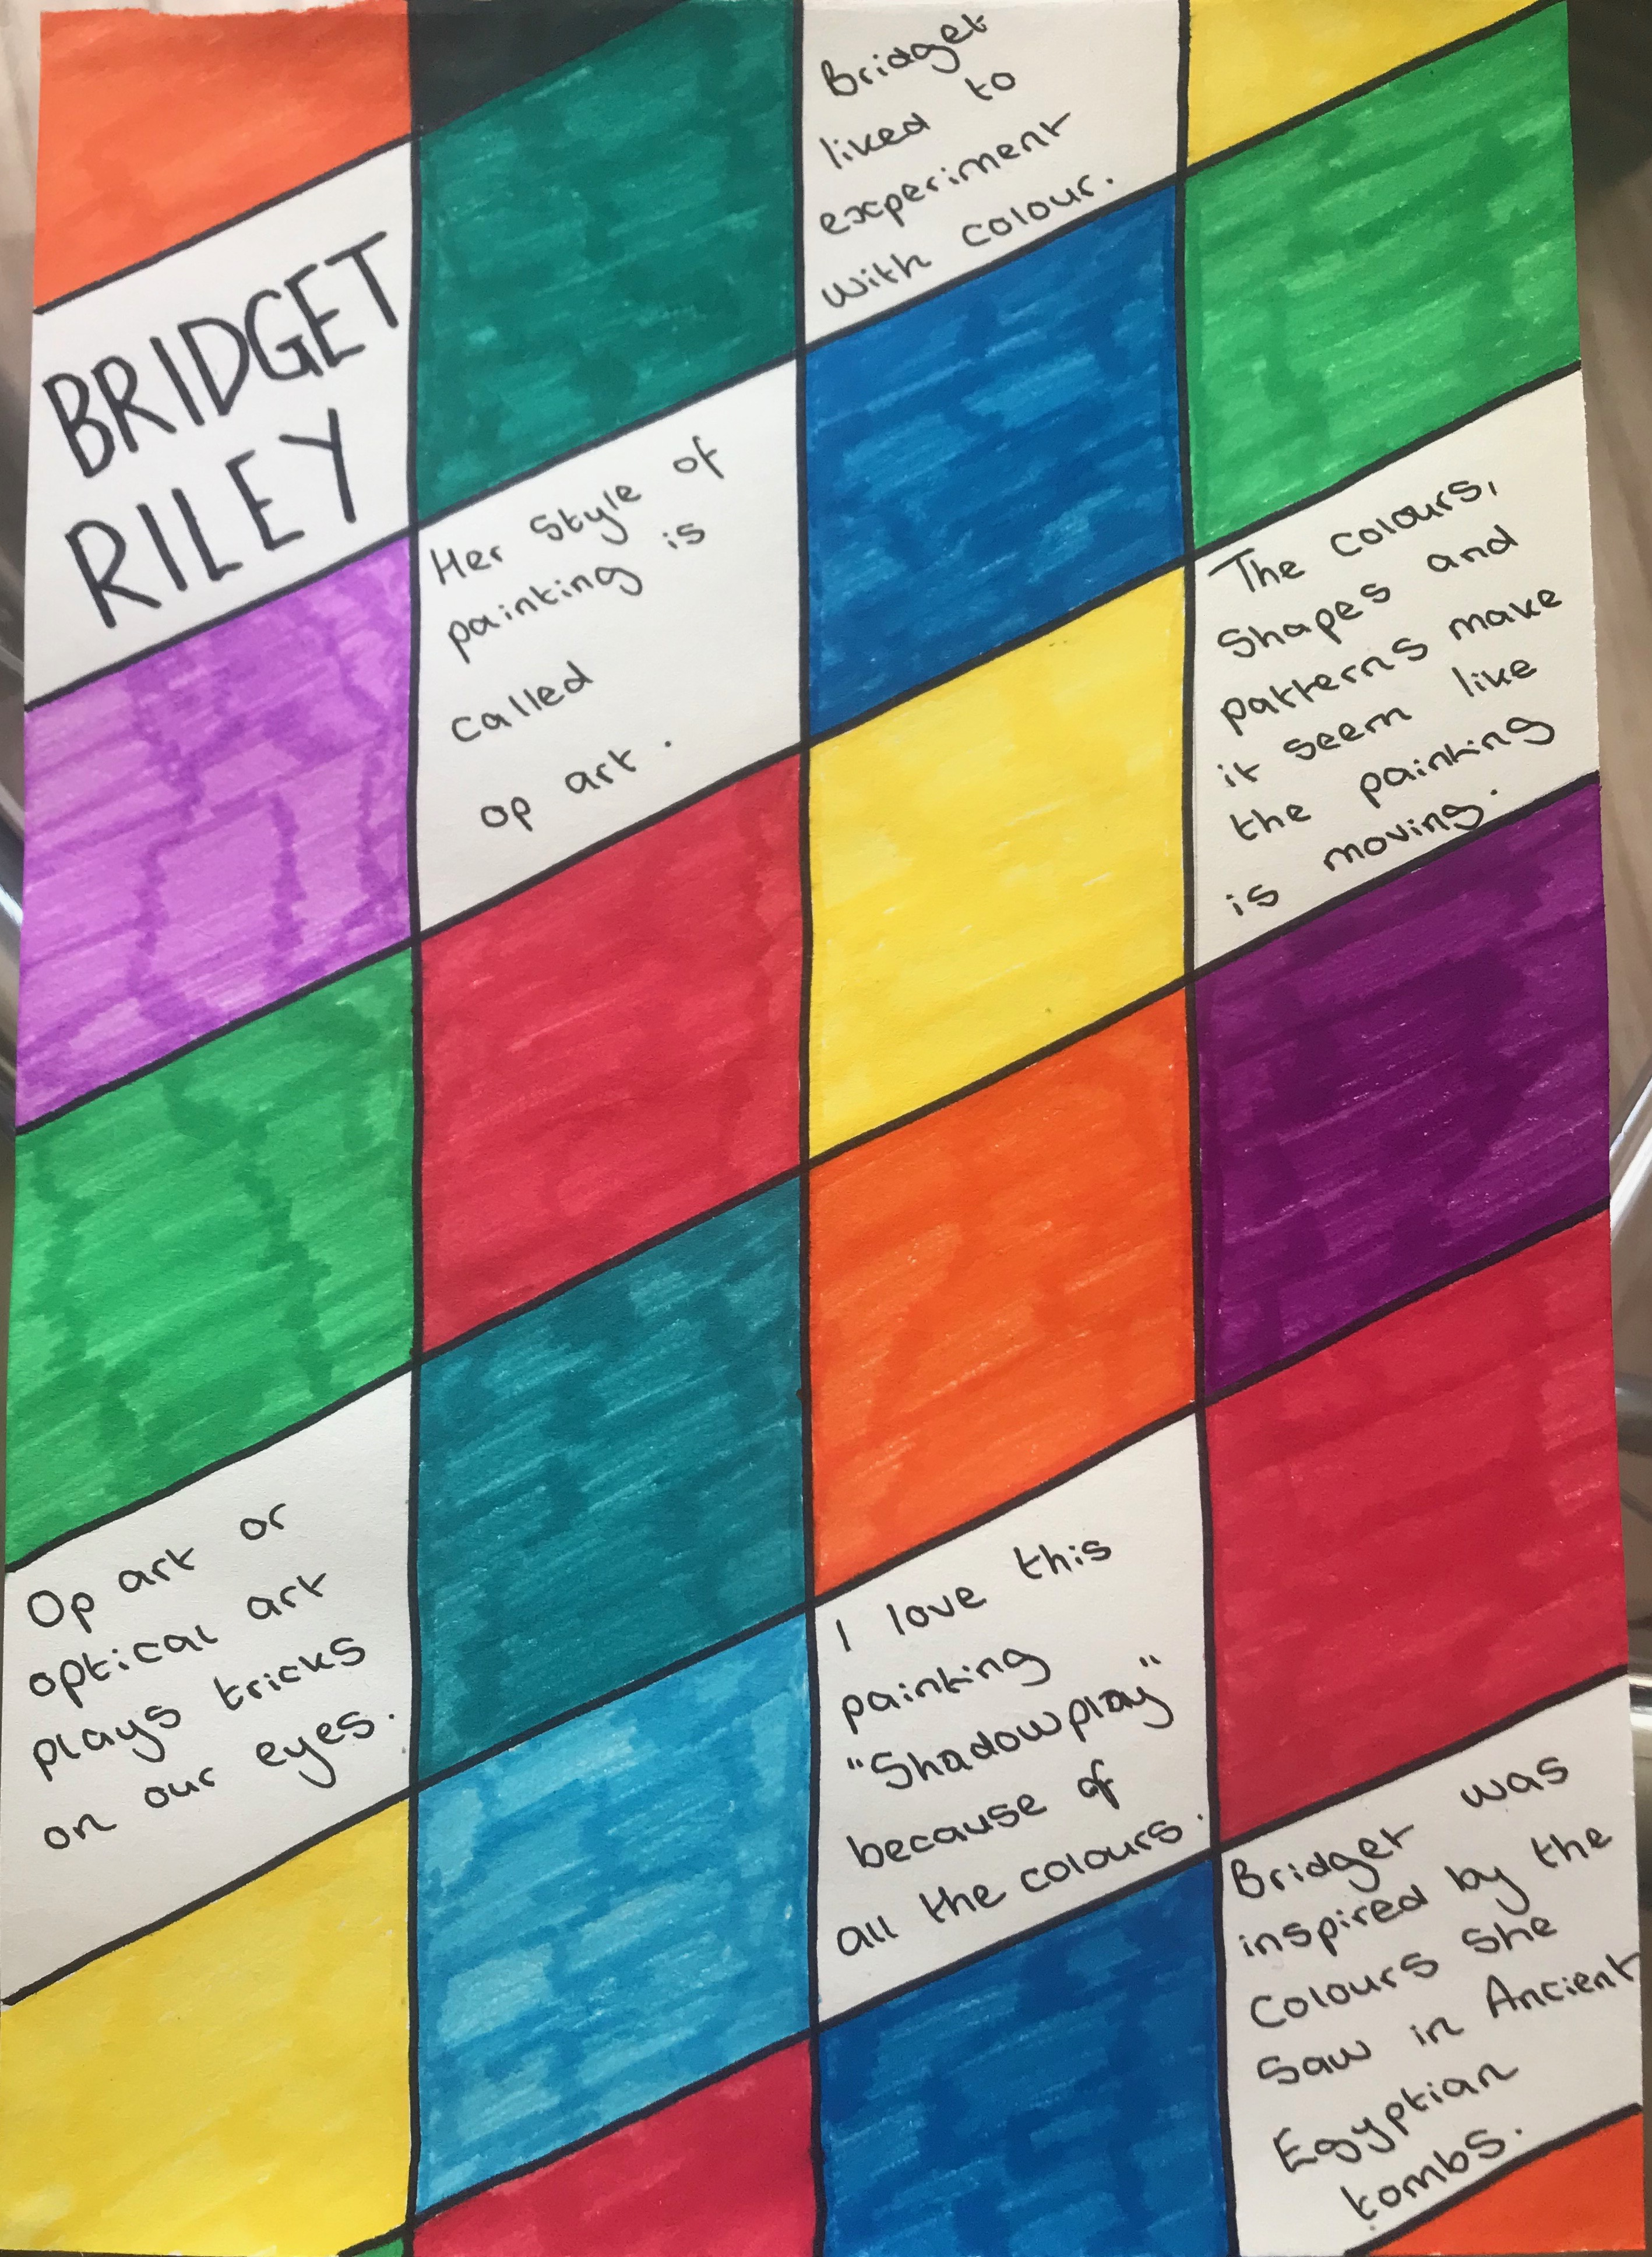 Poster showing information learnt about Bridget Riley